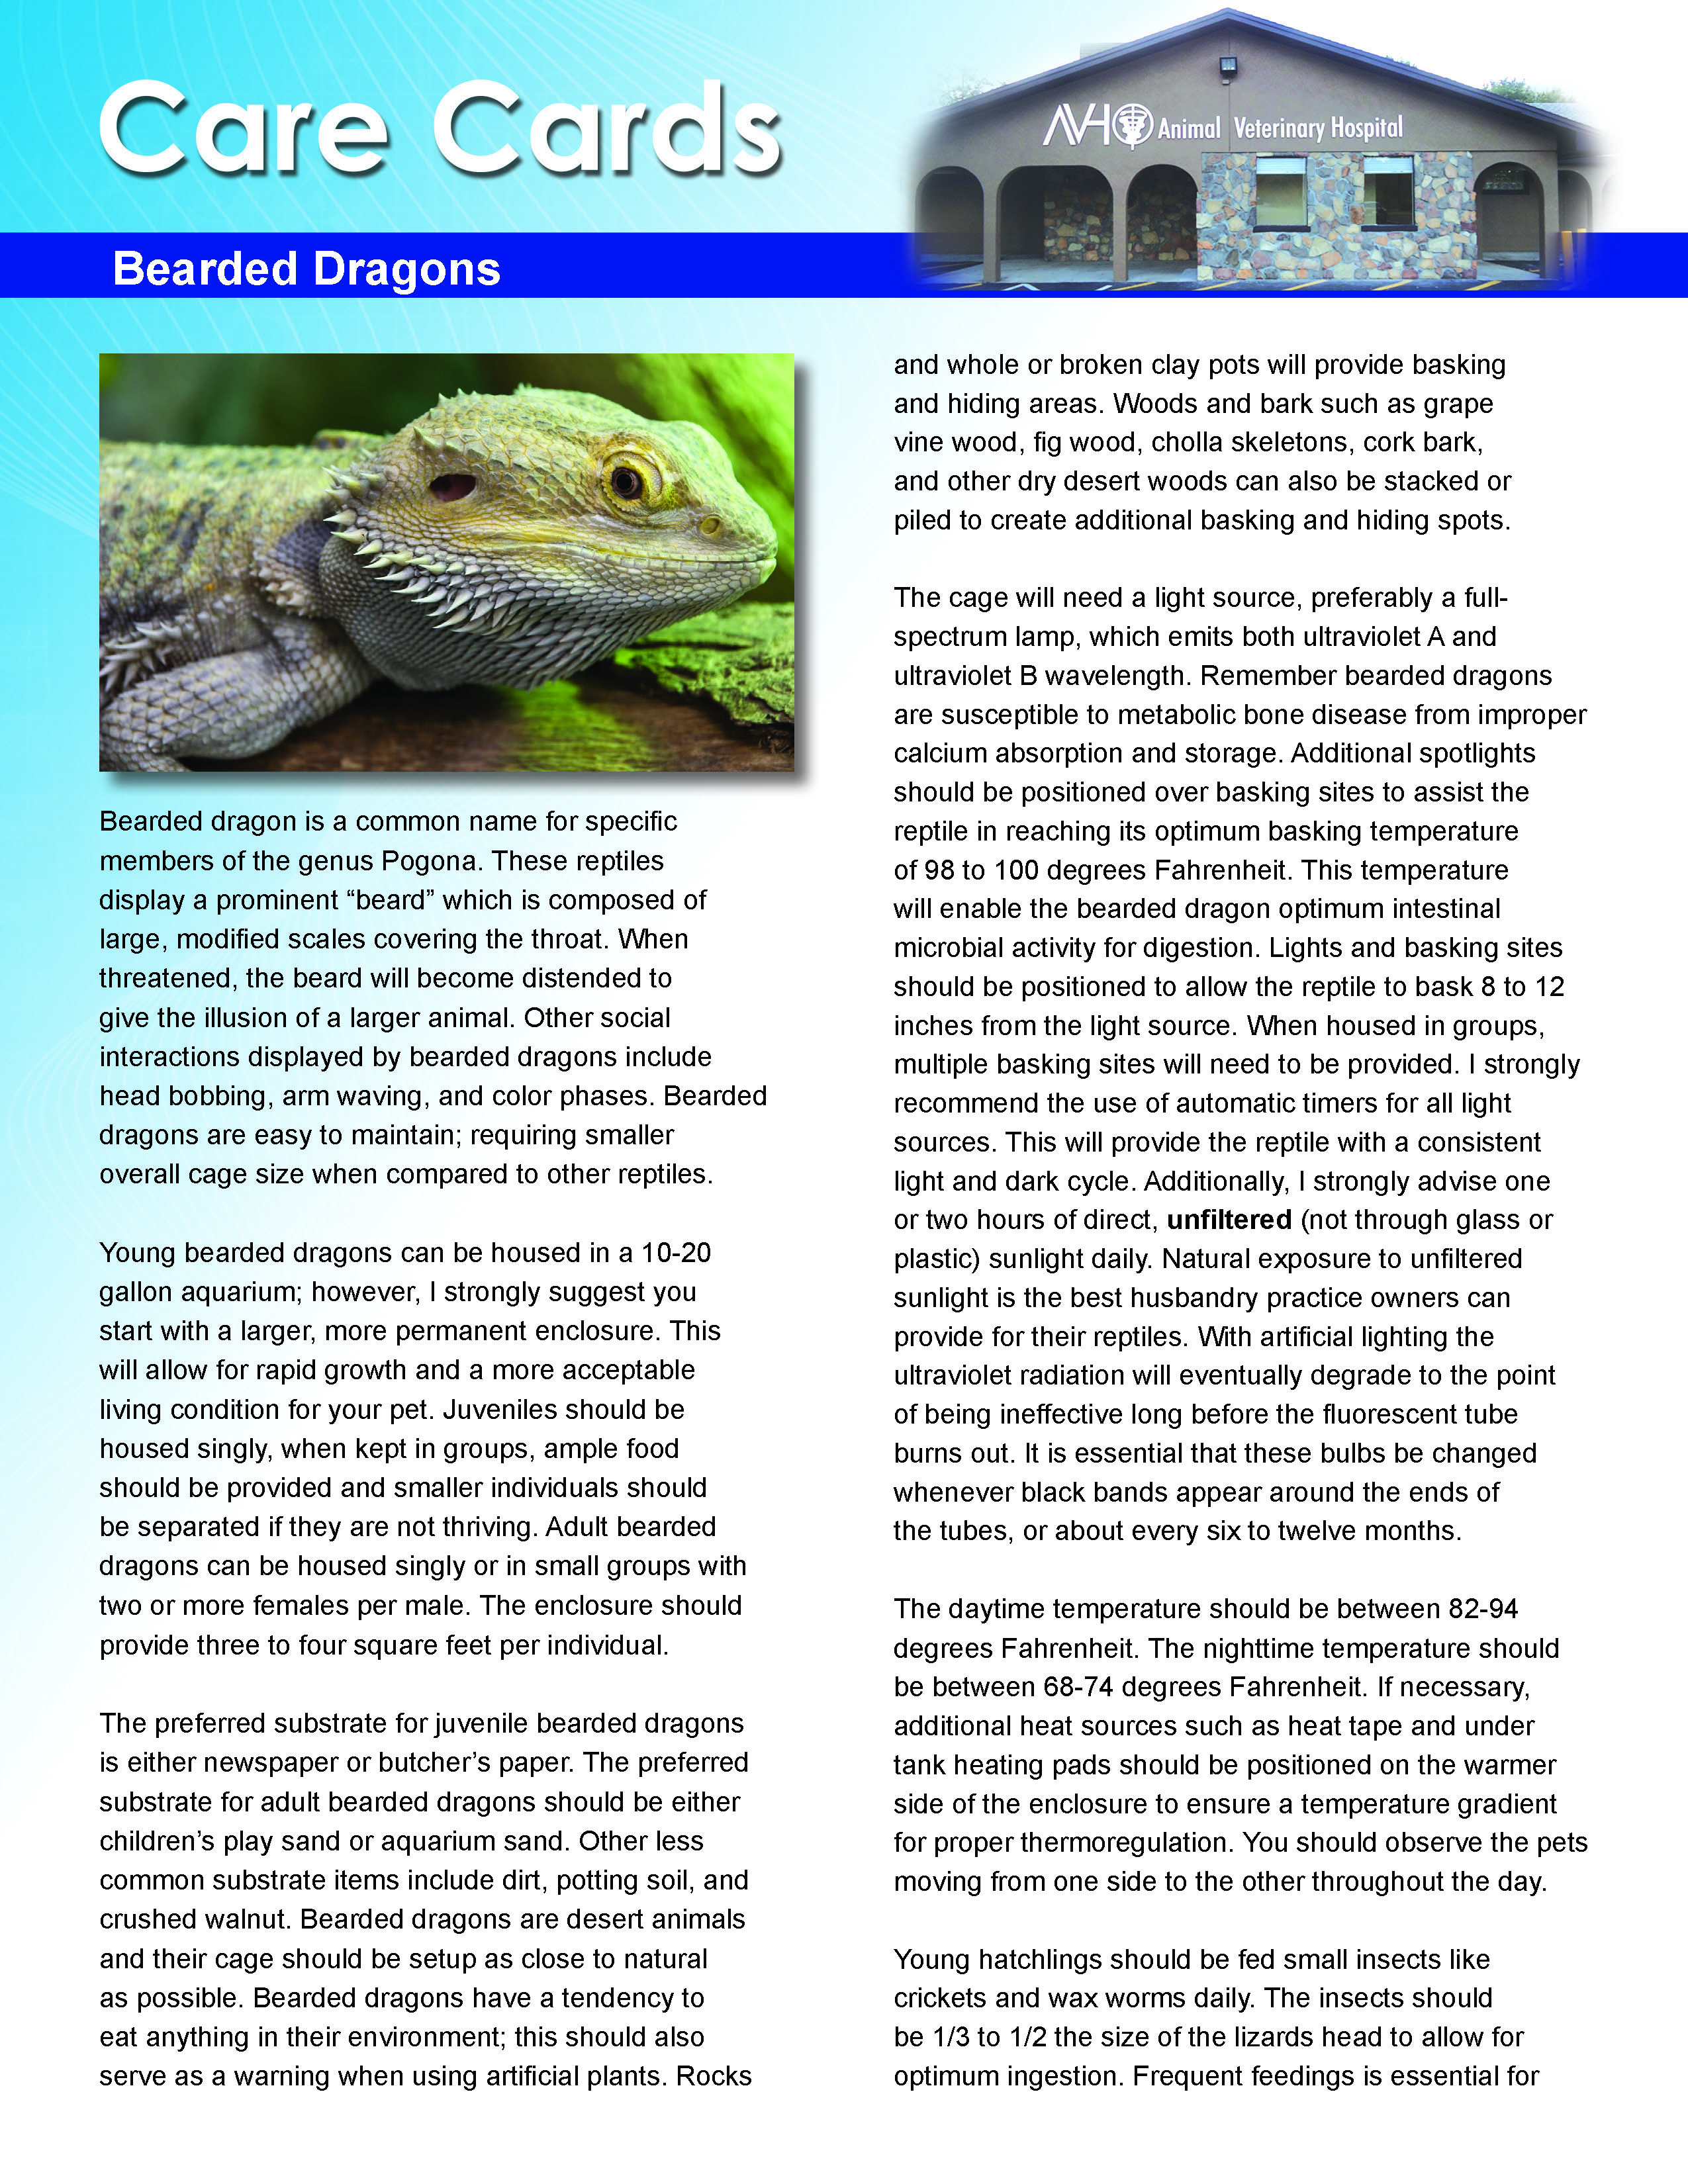 Bearded Dragons Care Card